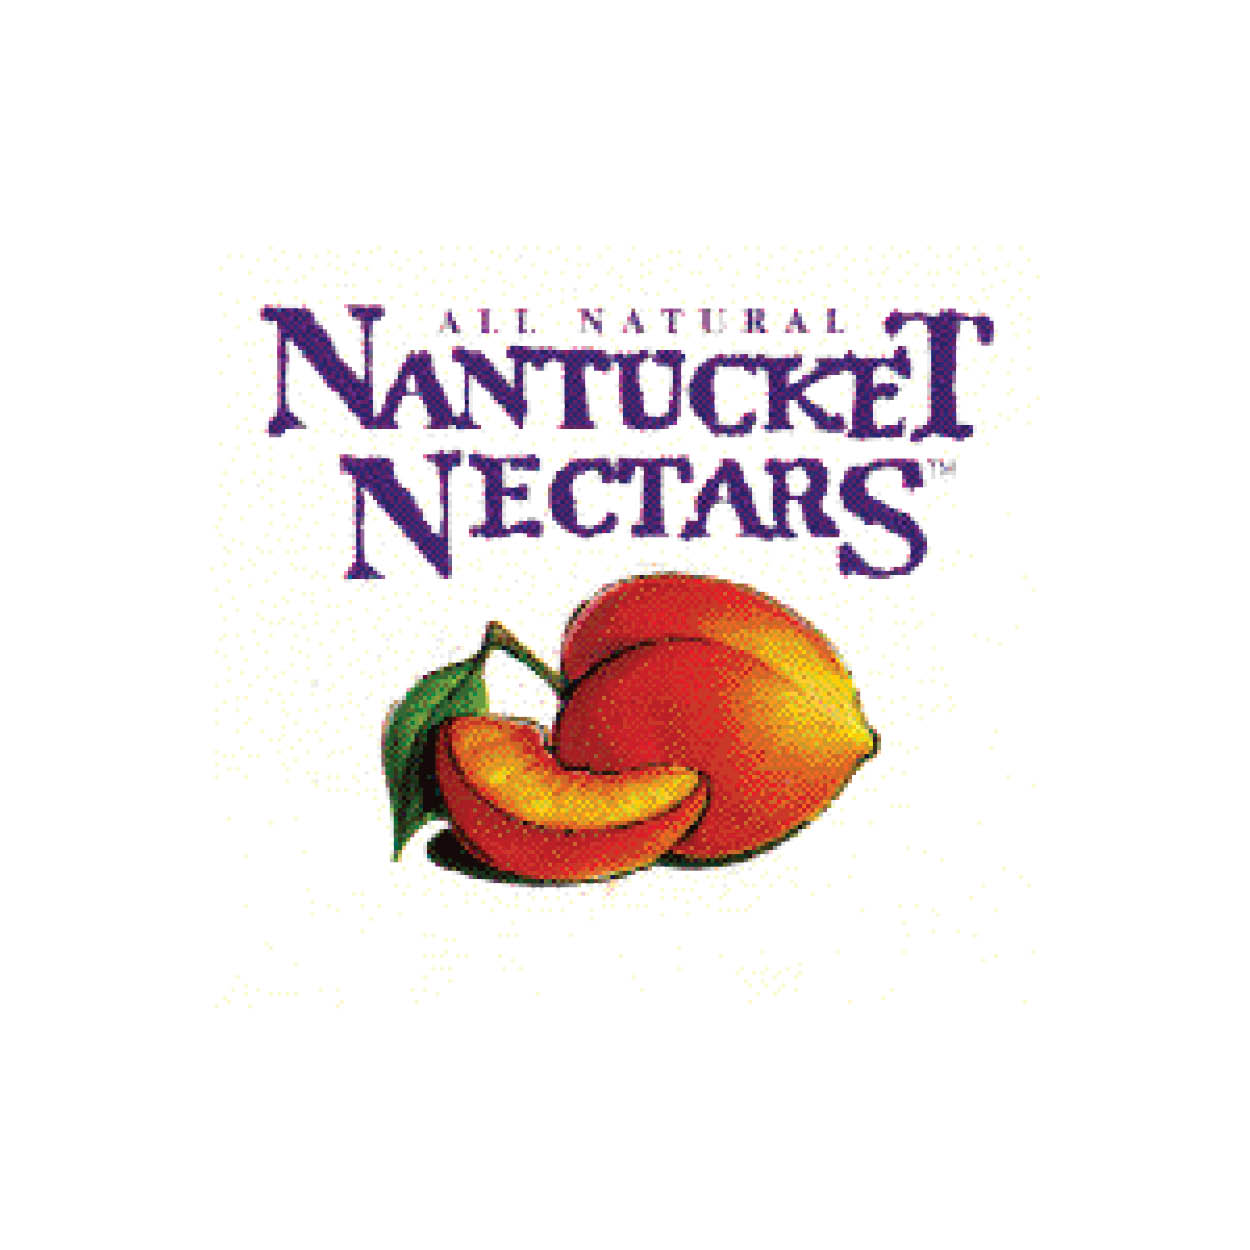 Nantucket Nectars